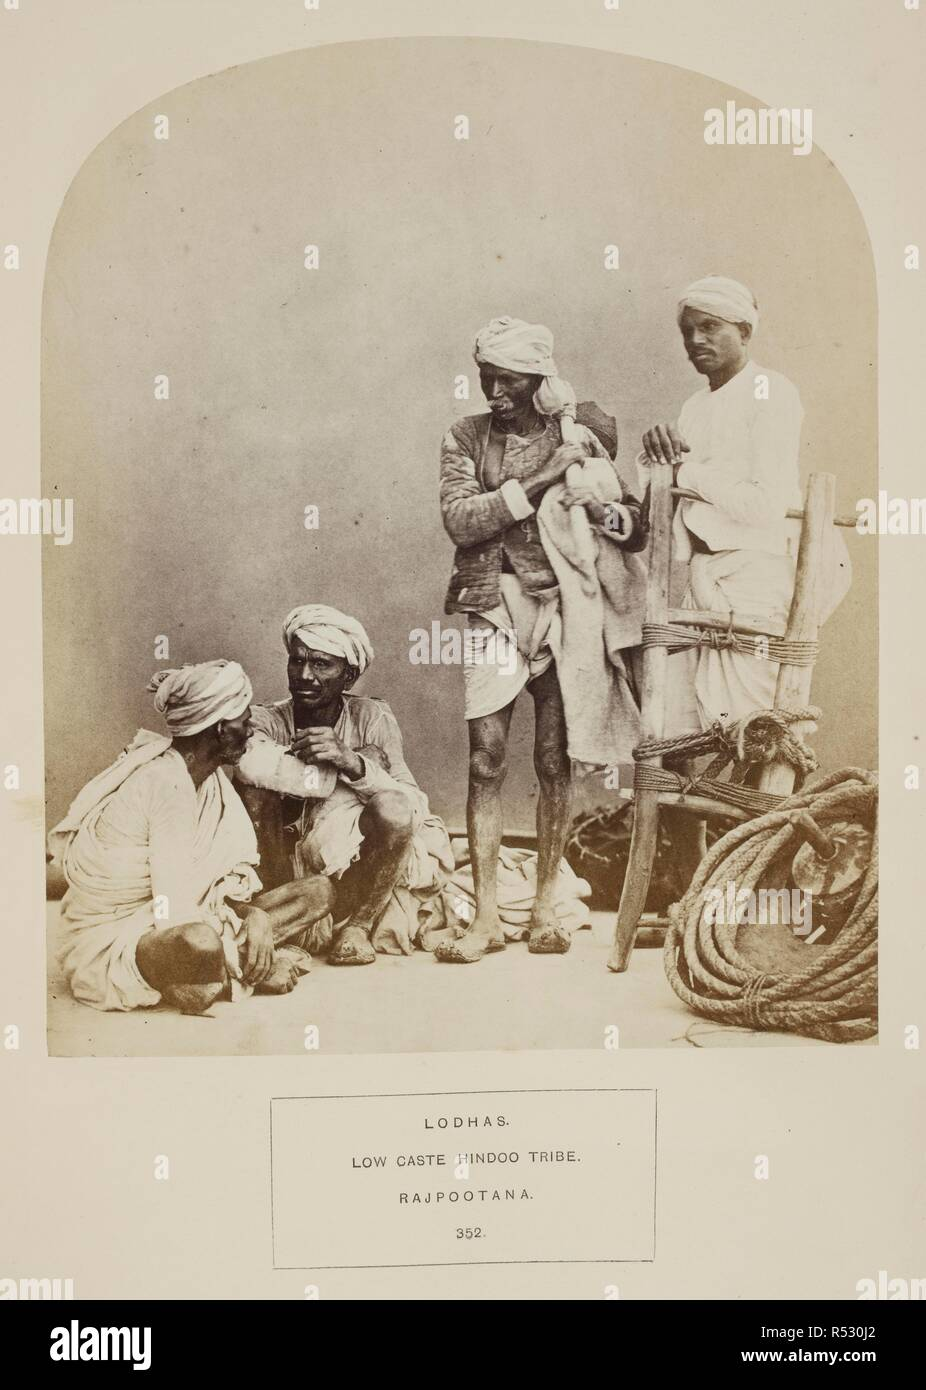 Lodhas. Low caste Hindoo tribe. Rajpootana. A group of four men with agricultural implements. J. Forbes Watson and John William Kaye, 'The People of India. A series of photographic illustrations, with descriptive letterpress, of the races and tribes of Hindustan. Volume VII' (India Museum, London, 1872). 1862. Photograph. Source: Photo 972/7(352). Language: English. Author: Shepherd and Robertson. - Stock Image